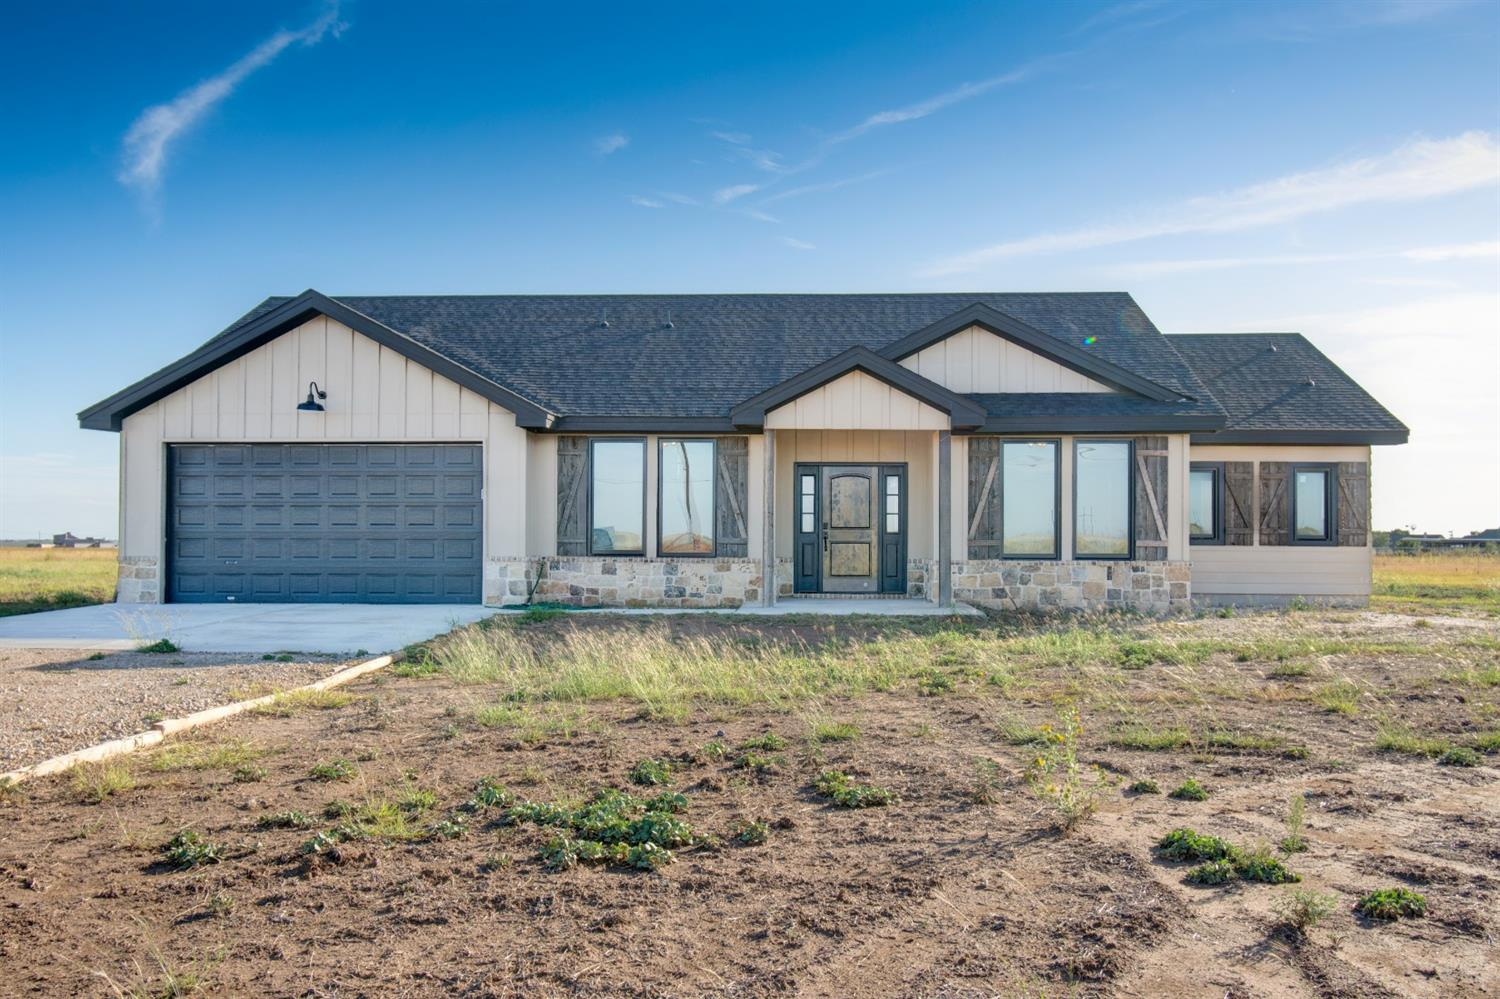 Brand new construction! Custom home on over 10 acres with room to roam and enjoy those perfect West Texas sunsets. From the time you open the door you are greeted with a neutral color palette and lots of natural light, soaring ceilings and the perfect stone fireplace. This open concept home makes for the perfect entertaining house. Hurry and see this house before it is to late. Seller to offer up to $5,000 in closing cost assistance with an acceptable offer.